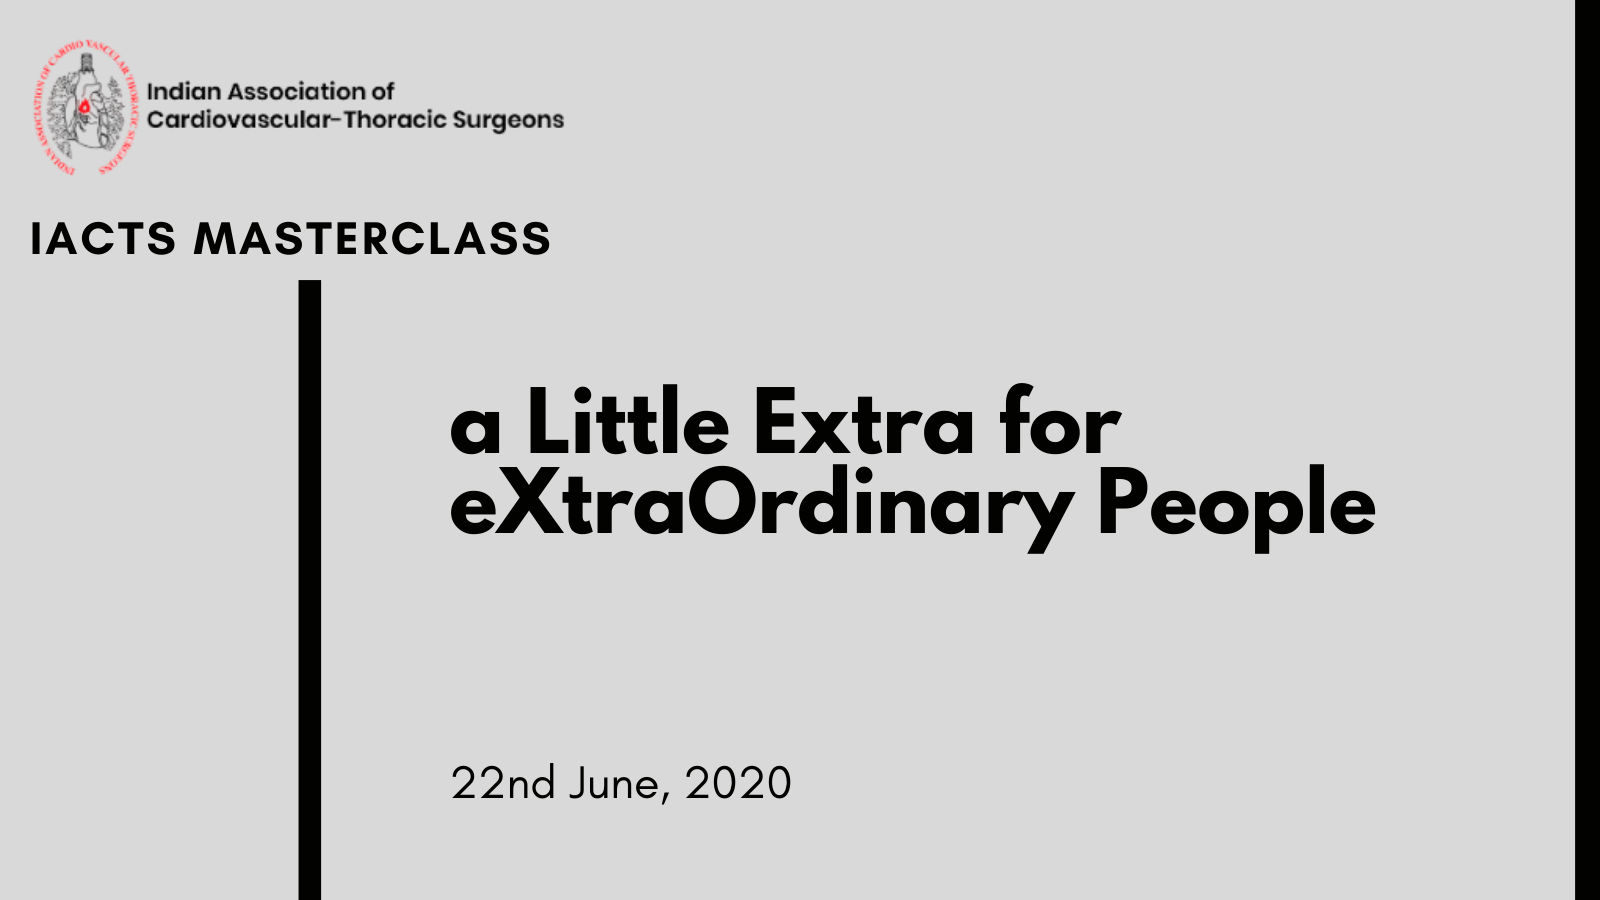 IACTS Masterclass - webinar - 'a Little Extra' for eXtraOrdinary People by Naveen Lakkur